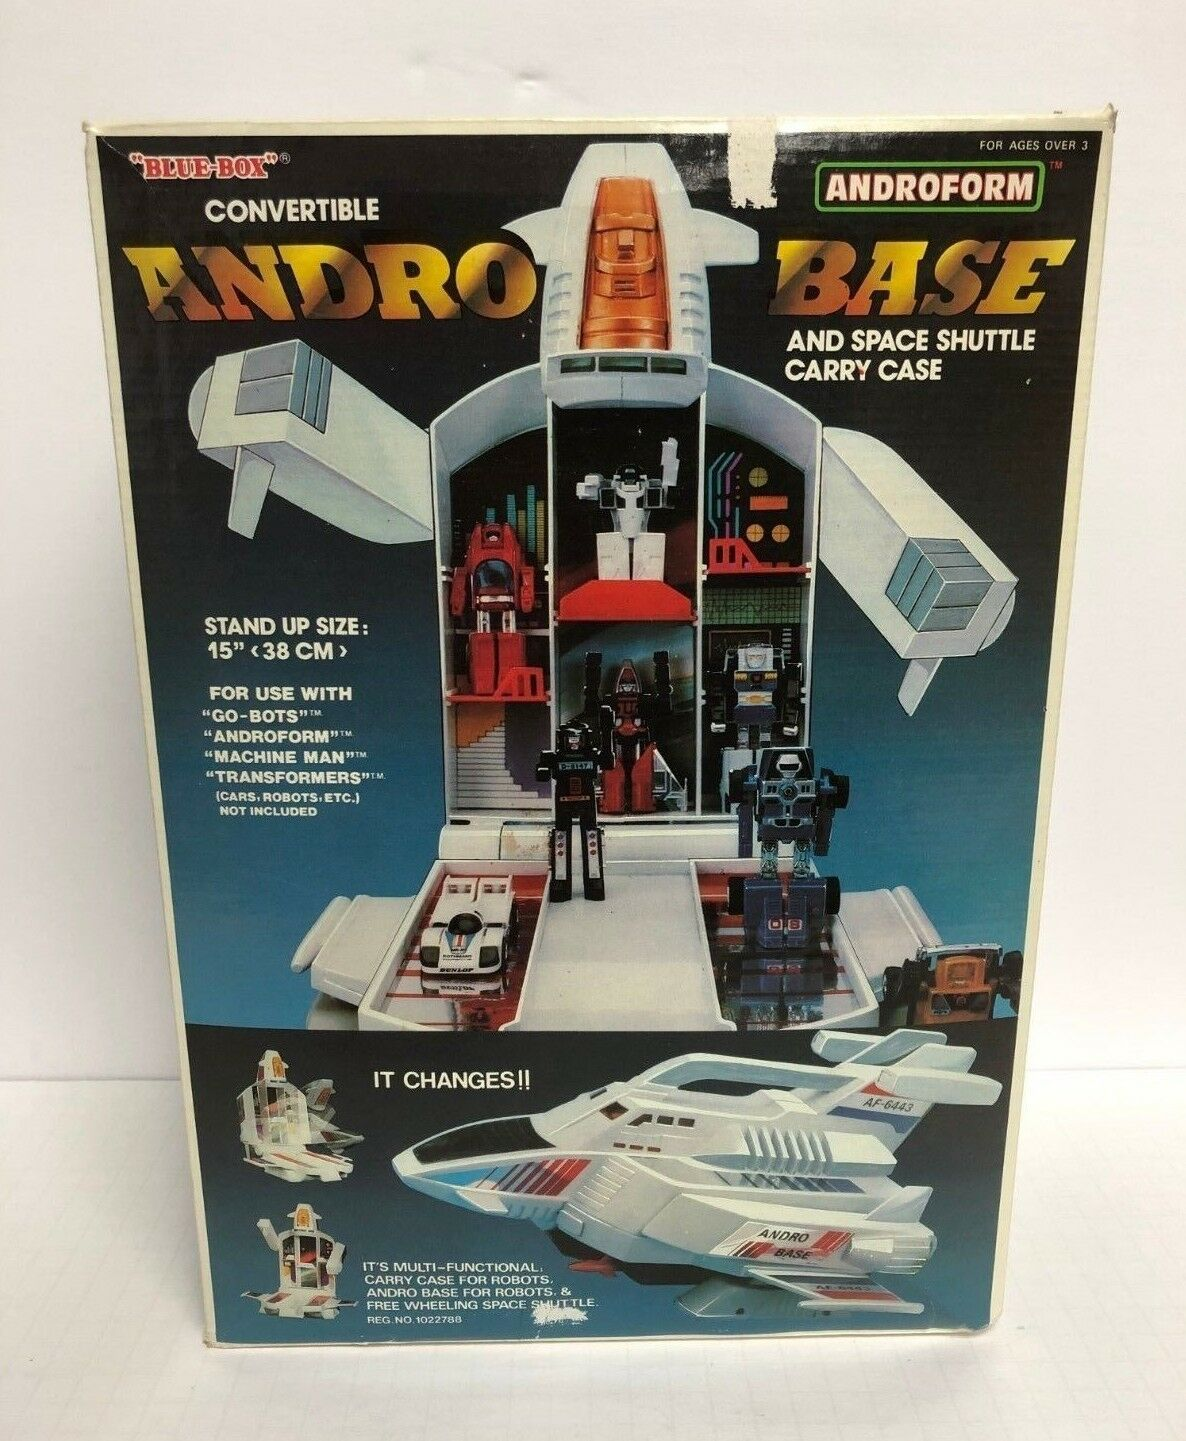 Vintage 1985 1985 1985 bluee-Box ANDRO BASE Space Shuttle Carry Case Go-bots Transformers f9af6c